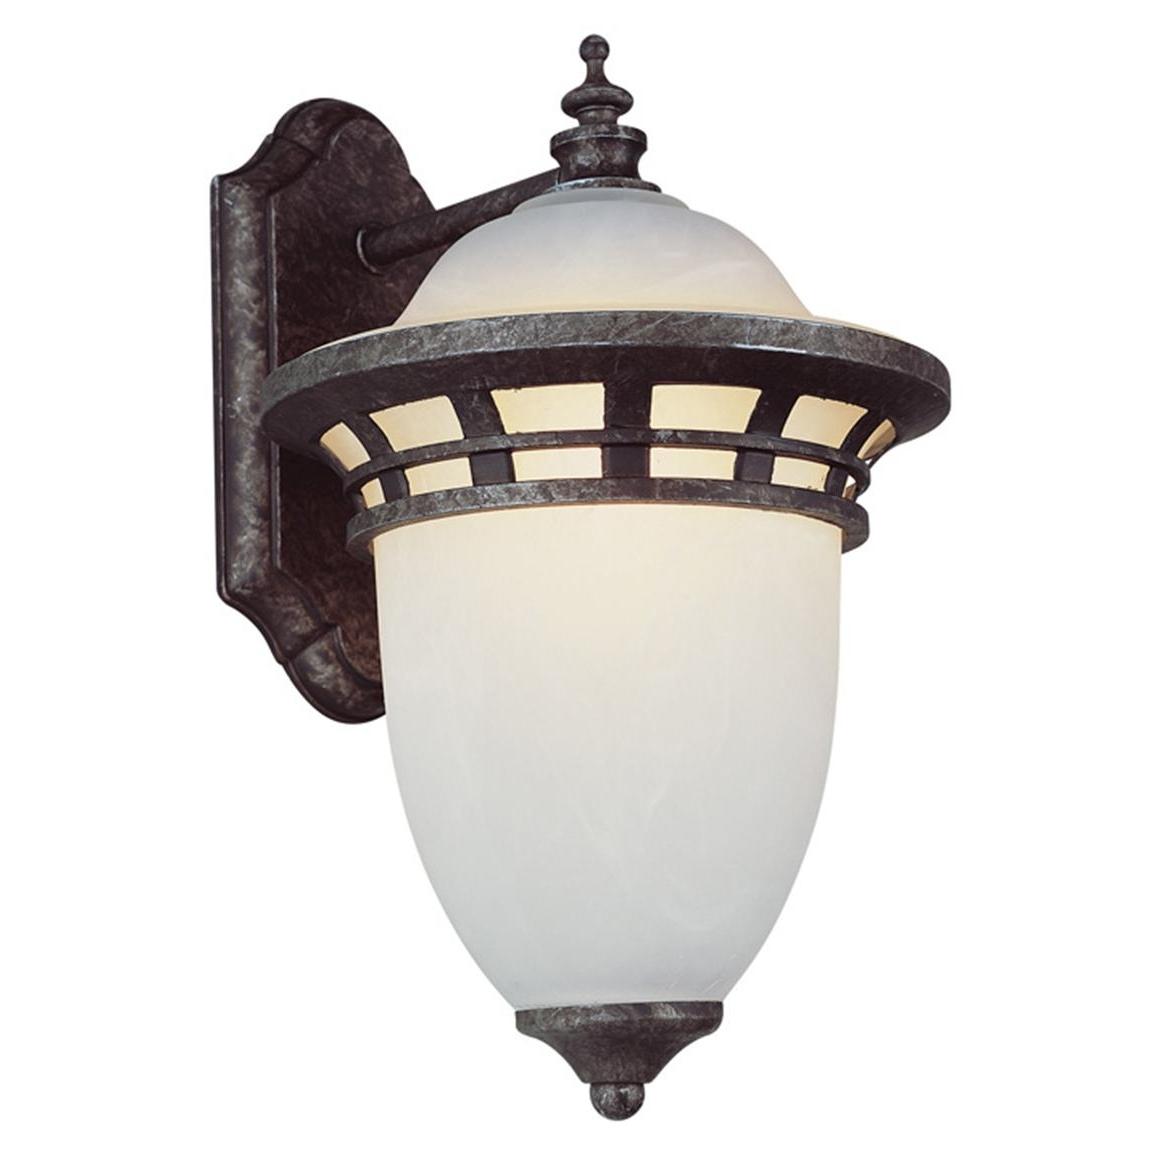 Well Known Outdoor Wall Mounted Globe Lights Intended For Trans Globe Lighting 1 – Light Outdoor Antique Wall Lantern – (View 5 of 20)